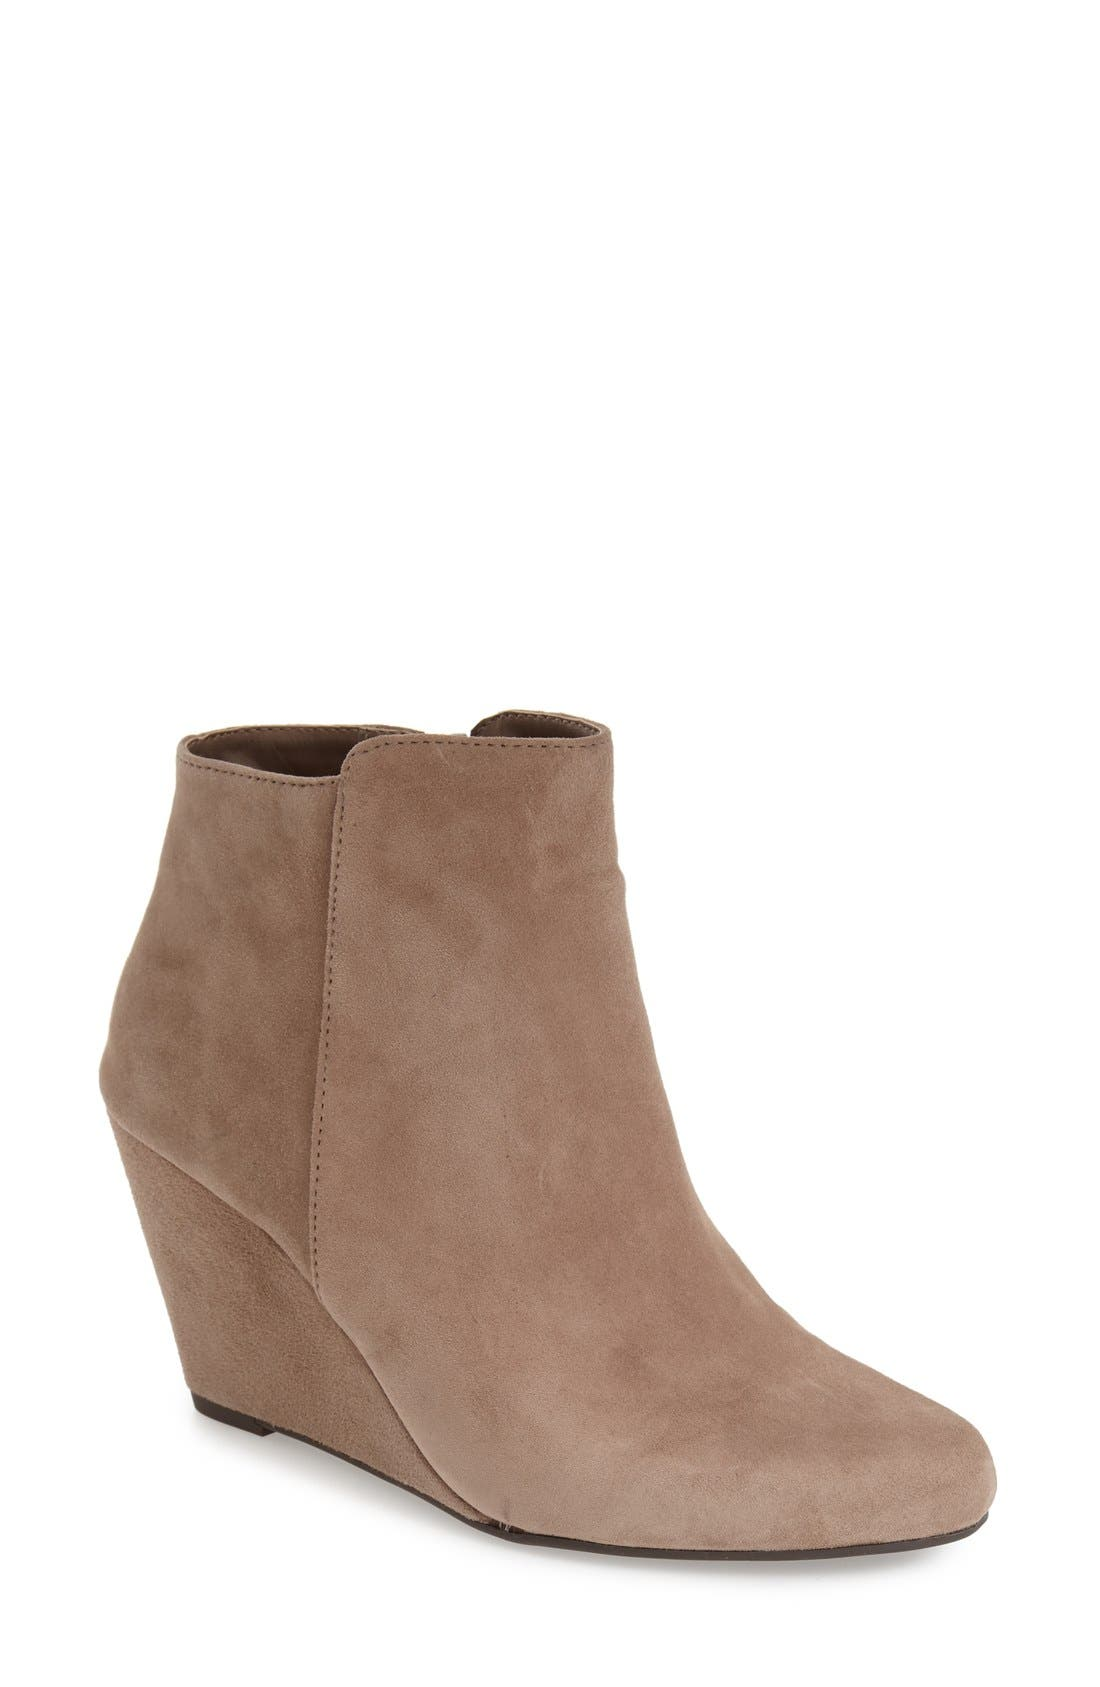 Main Image - Jessica Simpson 'Remixx' Wedge Bootie (Women)